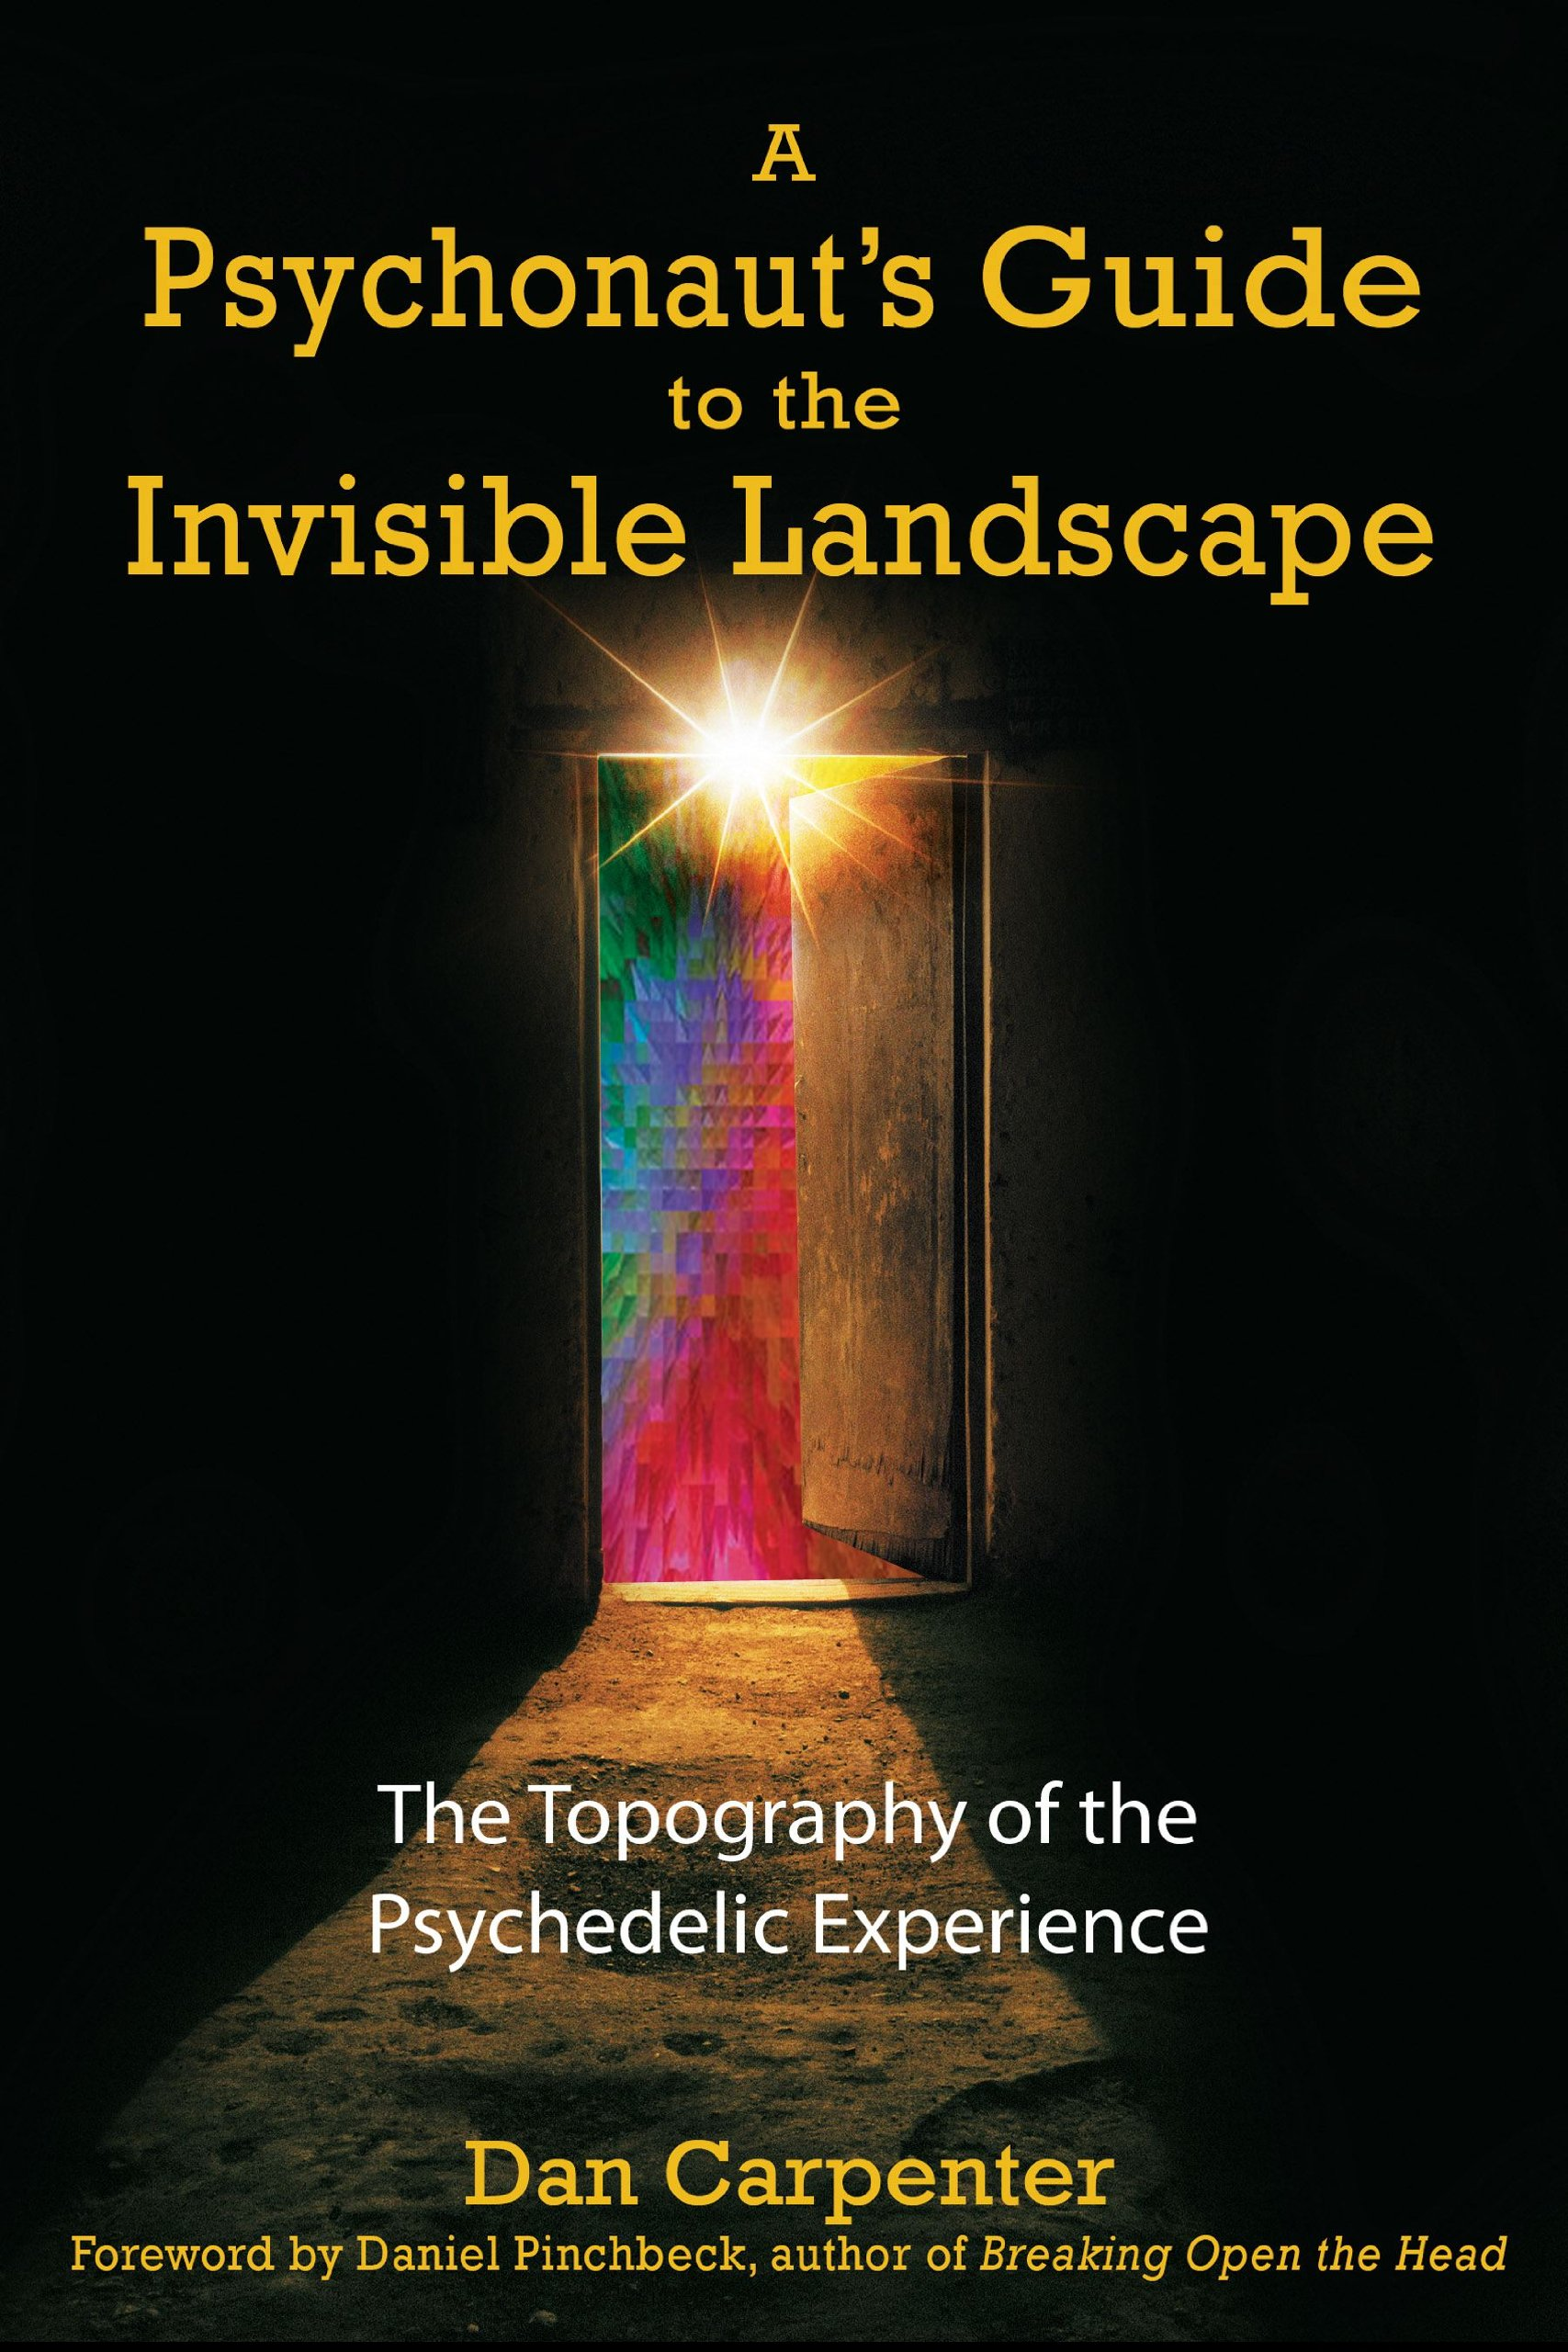 Amazon a psychonauts guide to the invisible landscape the amazon a psychonauts guide to the invisible landscape the topography of the psychedelic experience 9781594770906 dan carpenter daniel pinchbeck fandeluxe Choice Image